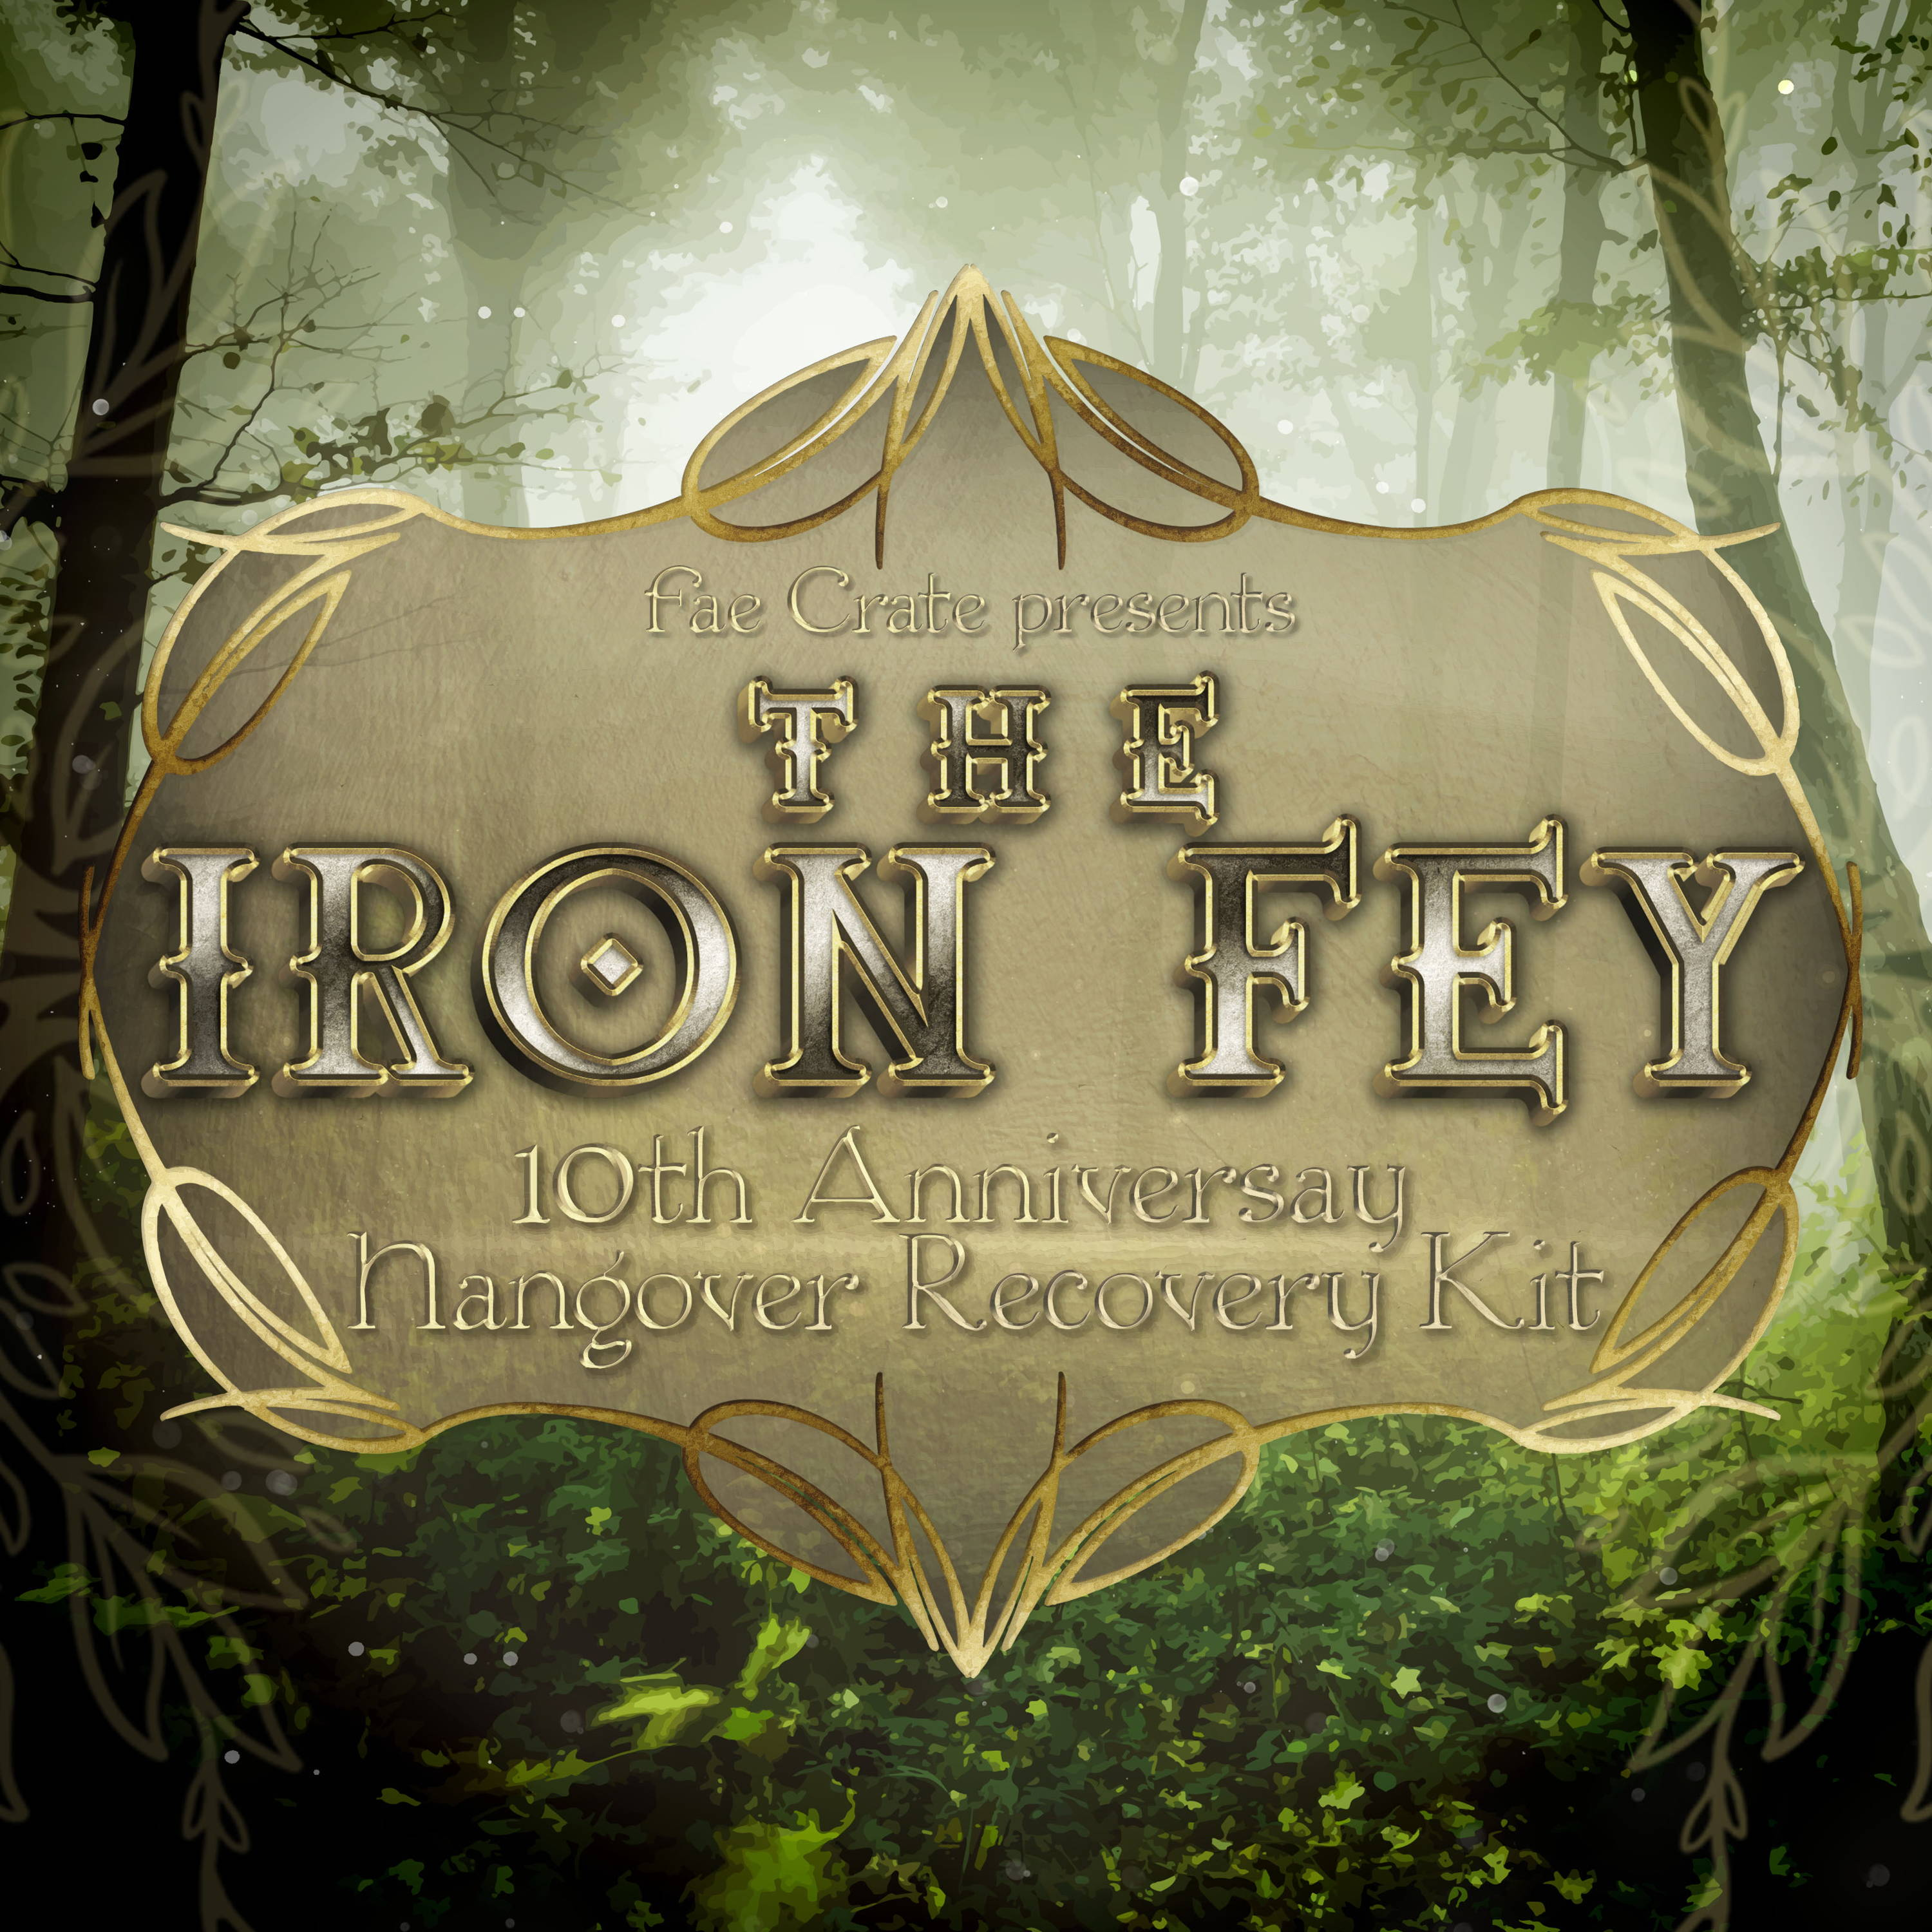 Fae Crate Presents The Iron Fey 10th Anniversary Hangover Recovery Kit